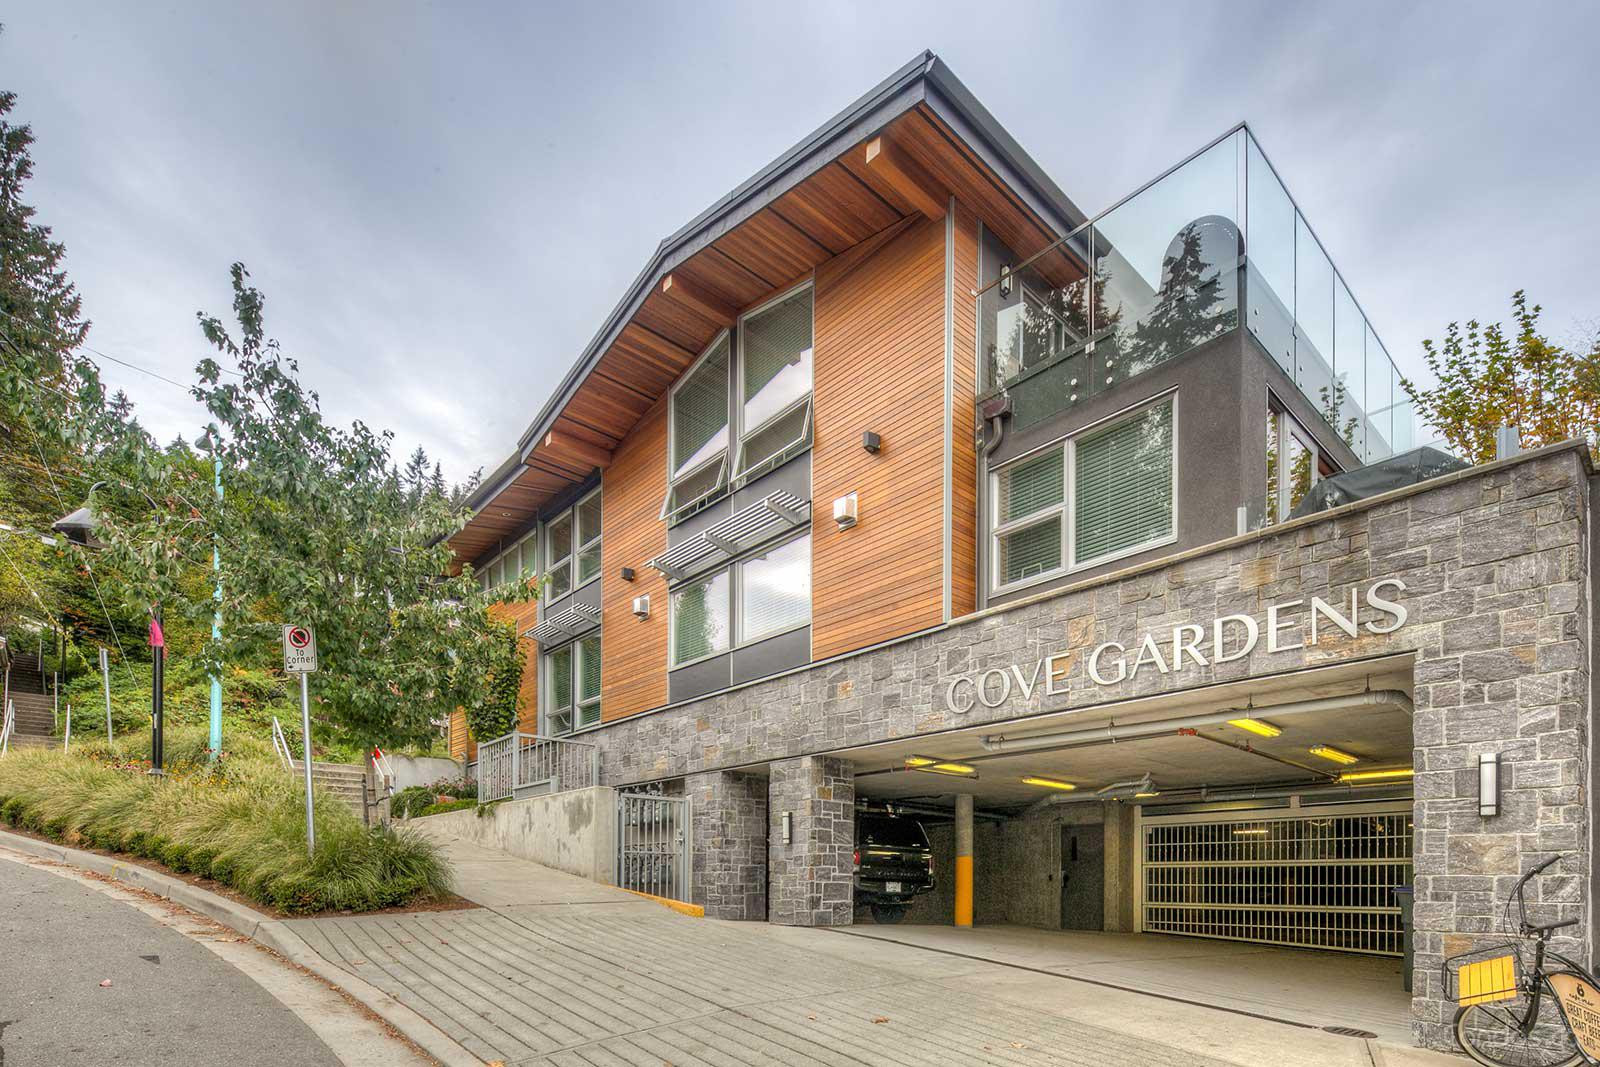 Cove Gardens at 2200 Caledonia Ave, North Vancouver District 0